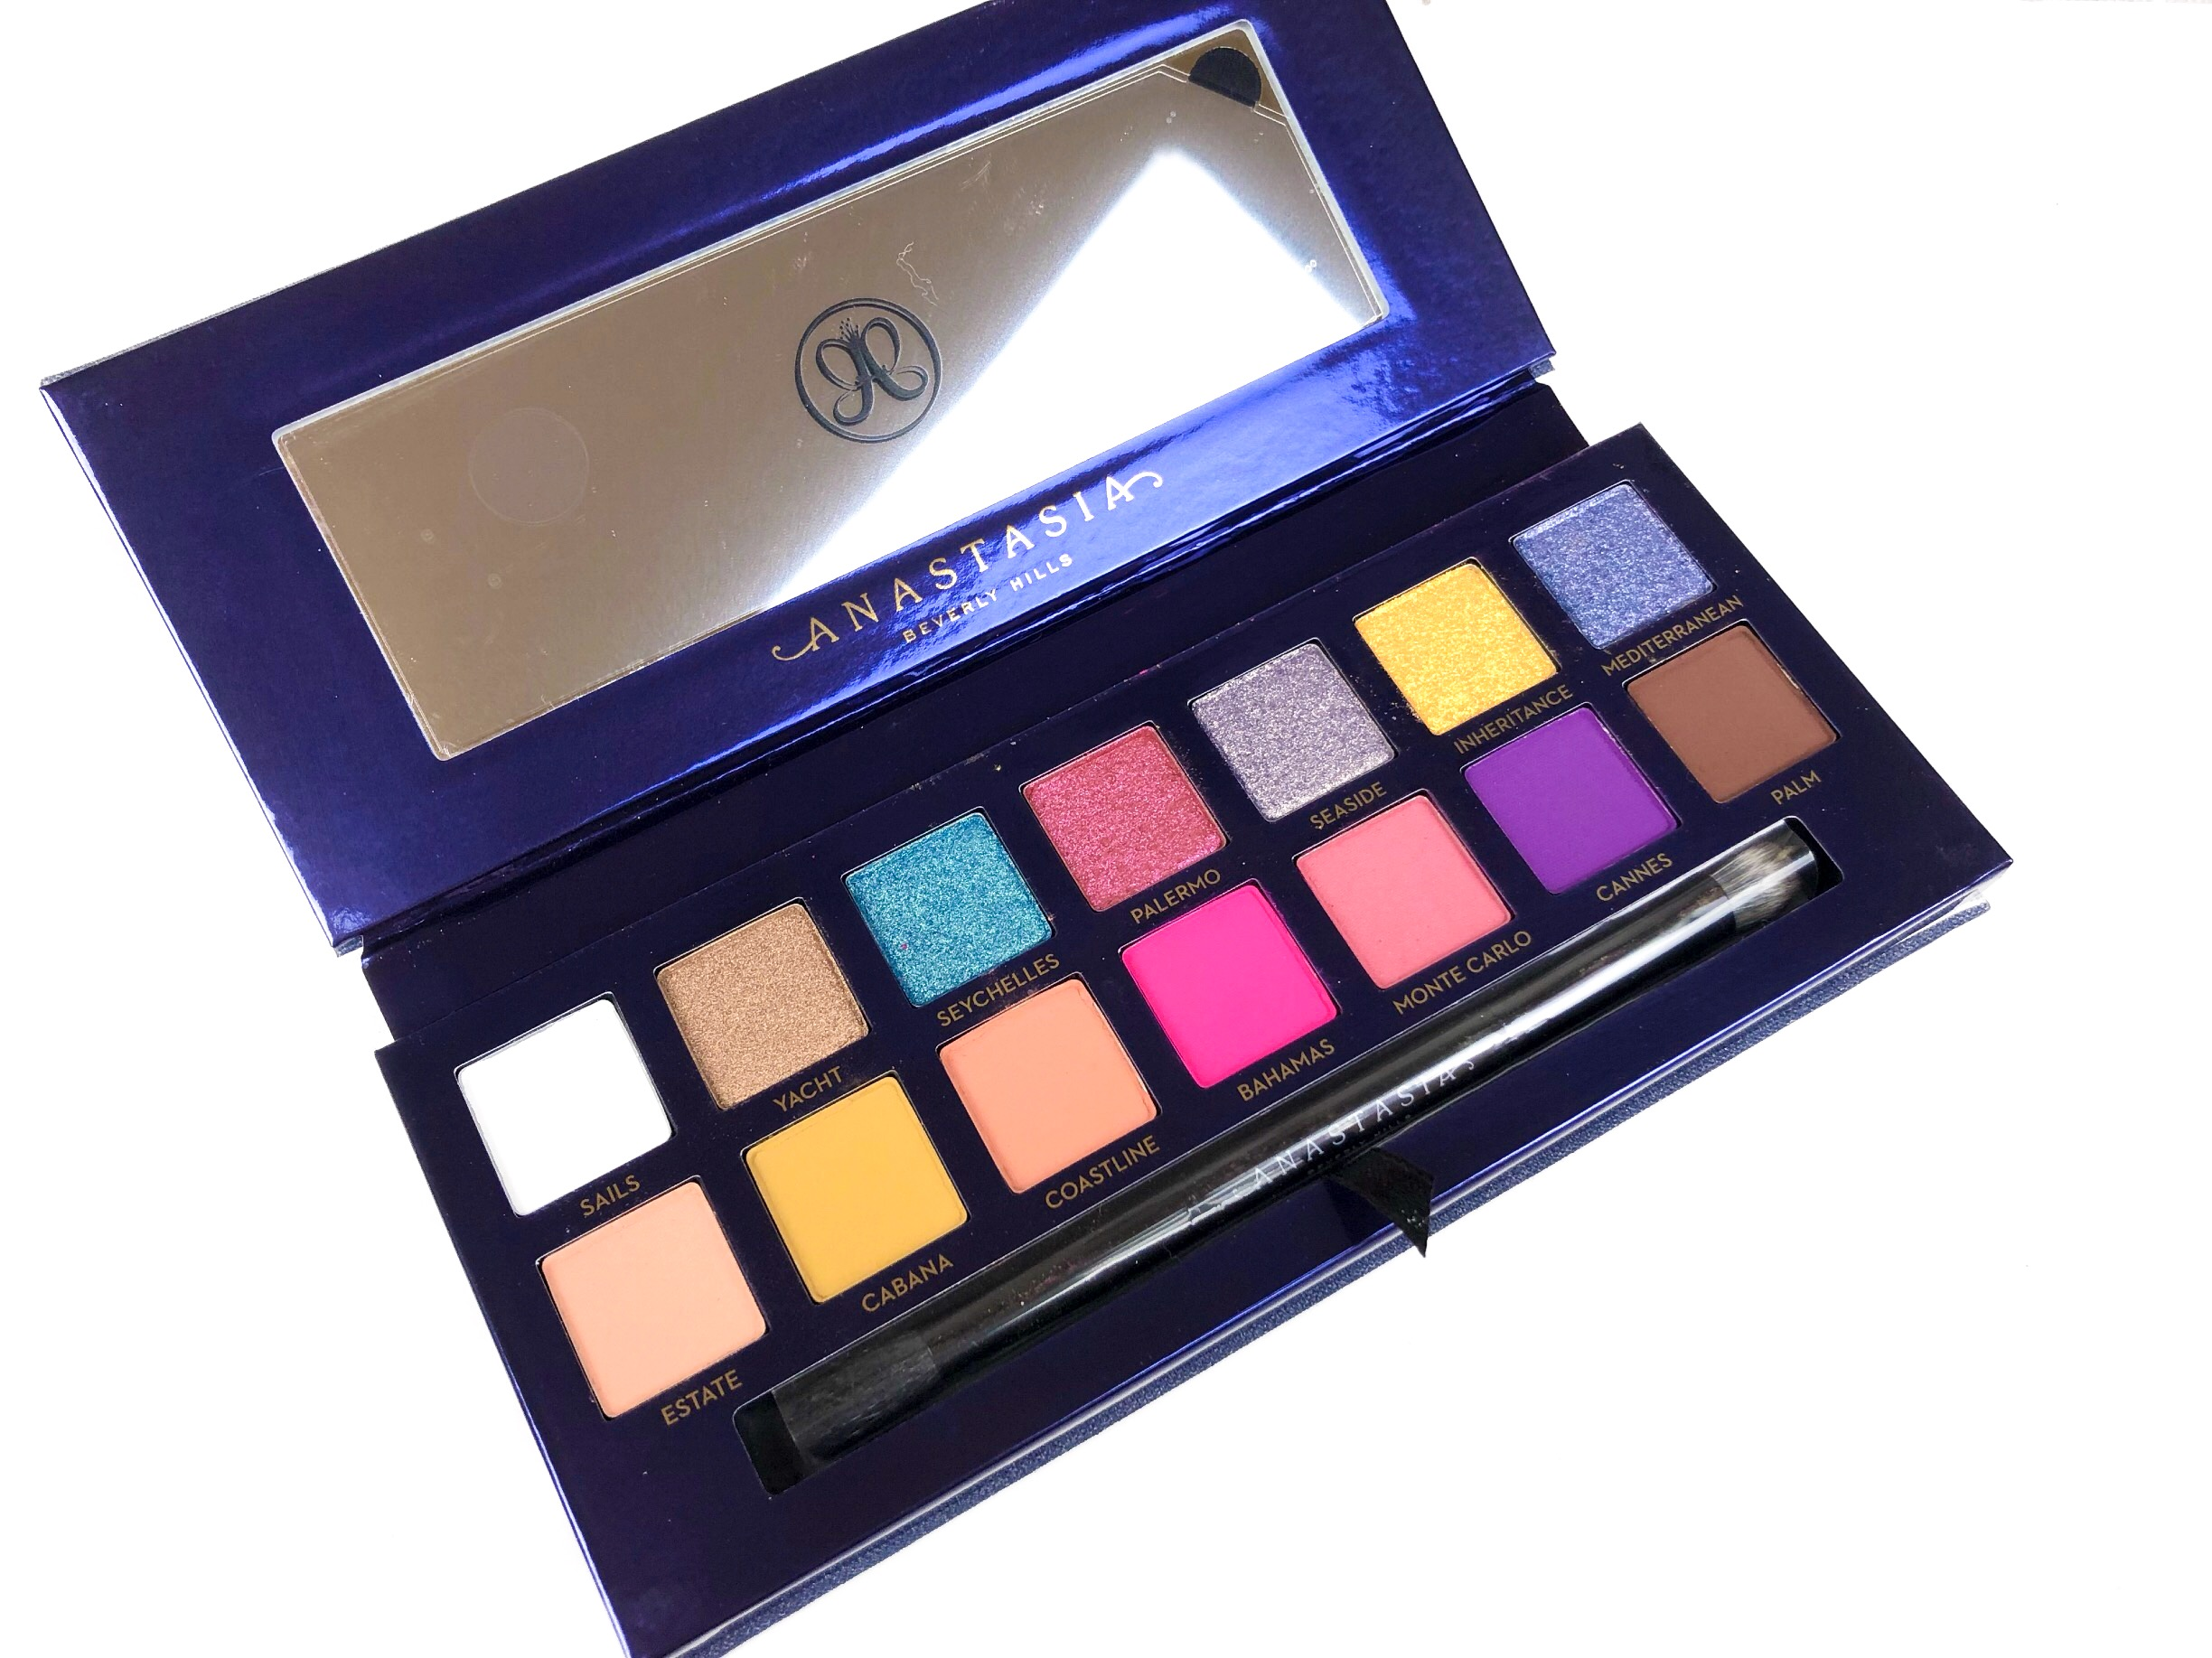 Pigmented eyeshadow colors in the Anastasia Beverly Hills Riviera palette